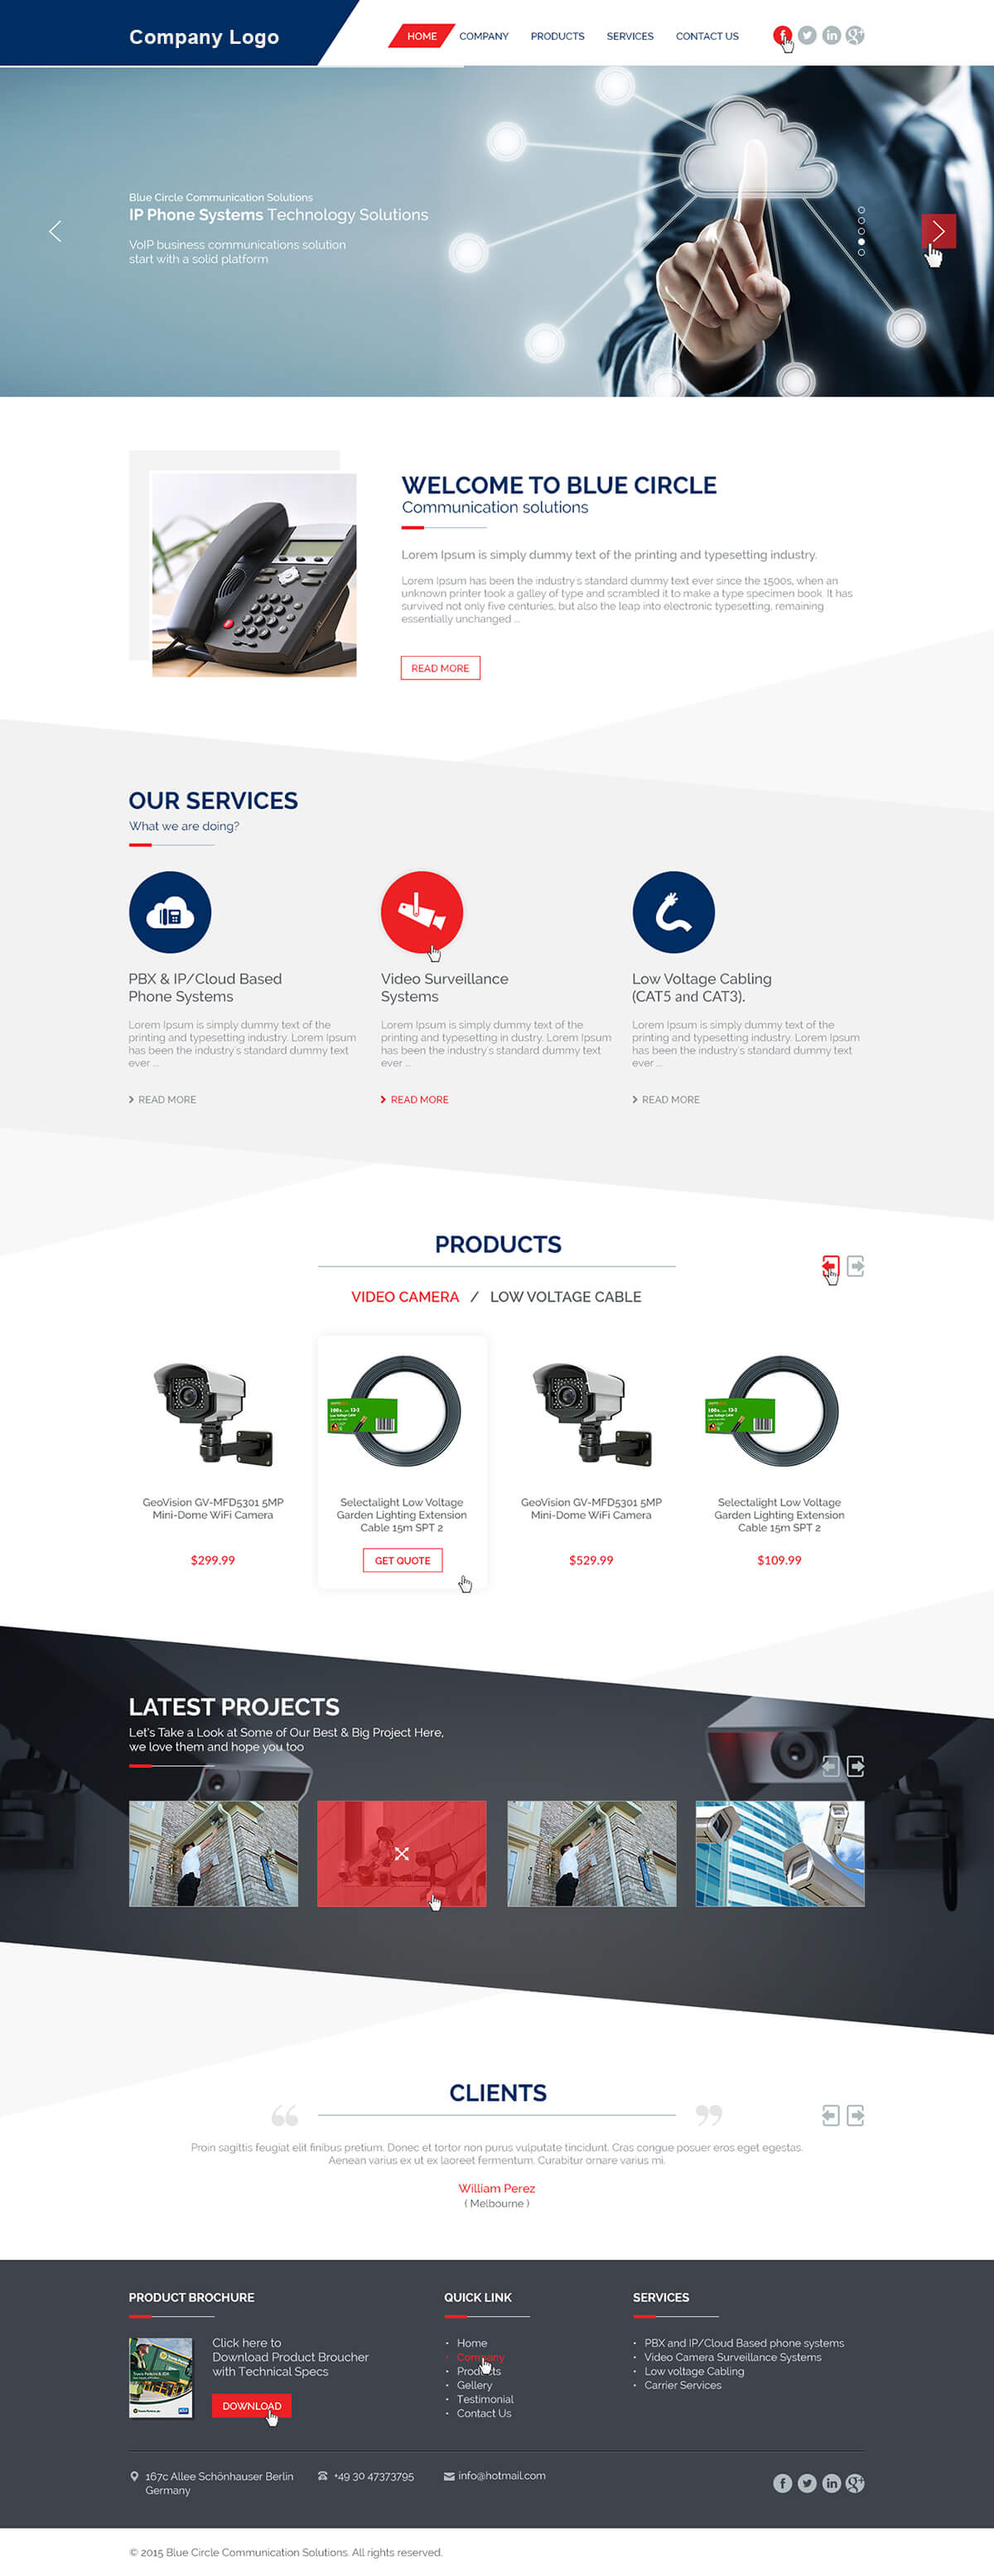 Small business website template ved web services small business website template wajeb Choice Image